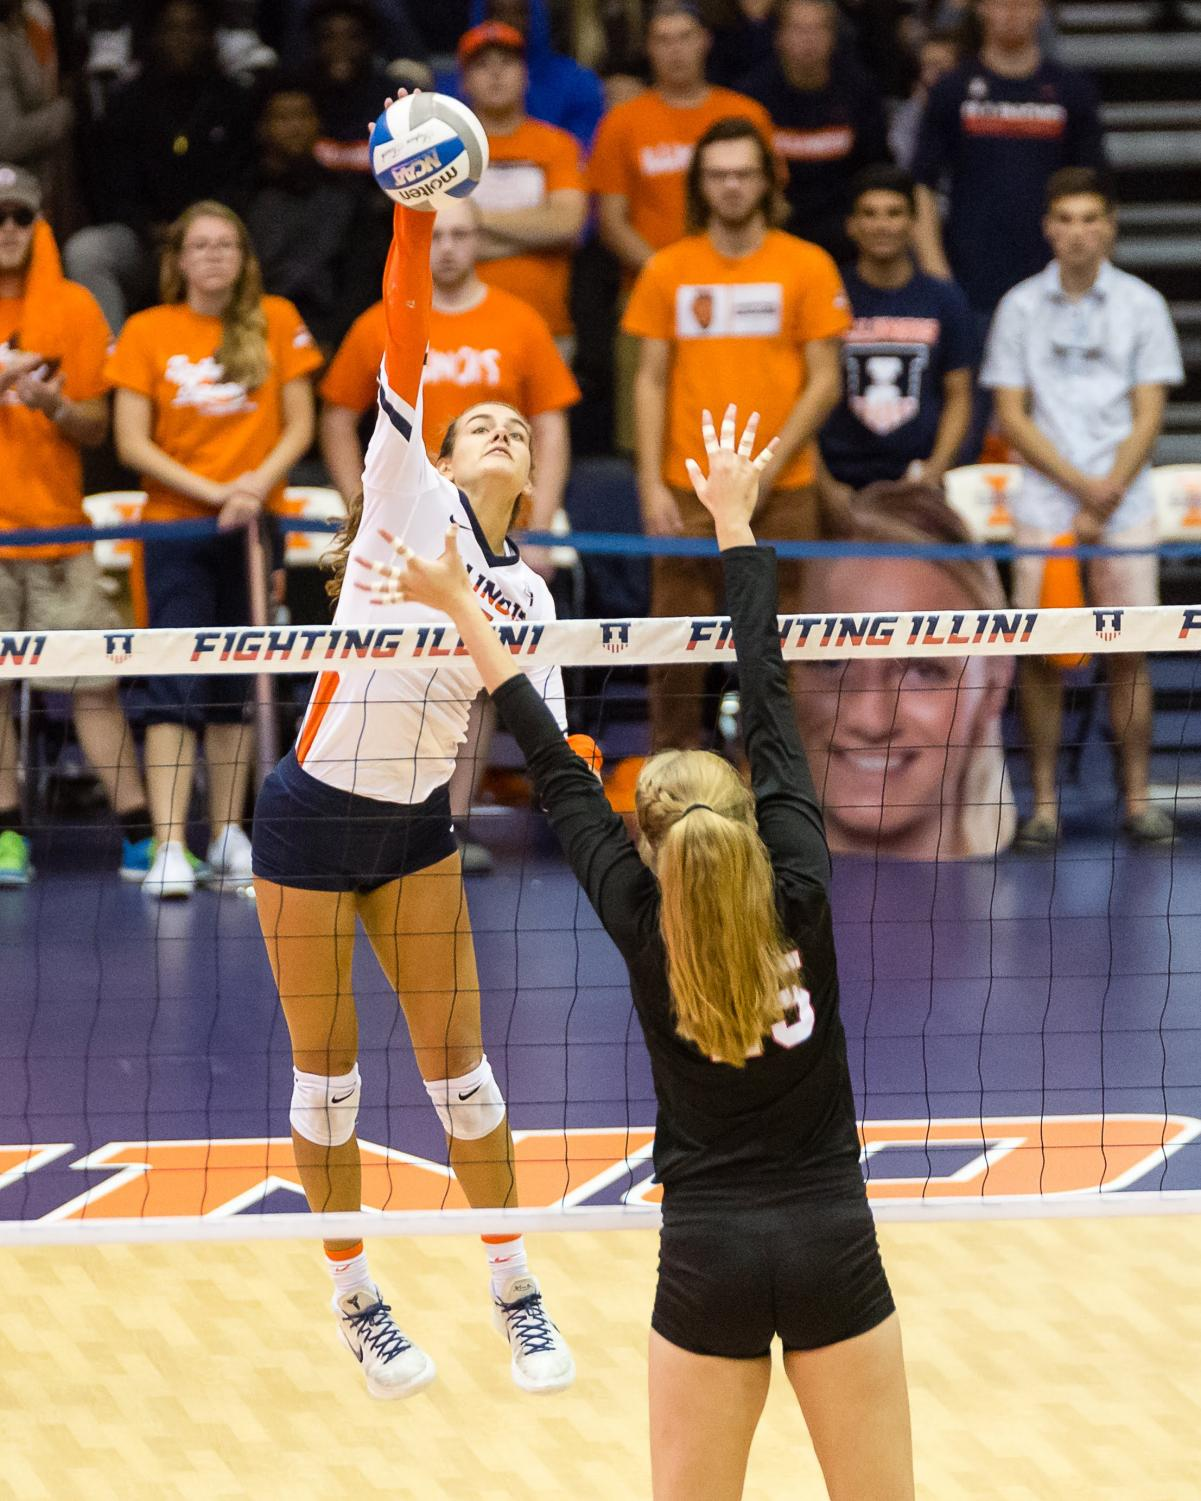 Illinois outside hitter Jacqueline Quade hits the ball from the back row during the match against Nebraska at Huff Hall on Sept. 29. The Illini lost 3-1.